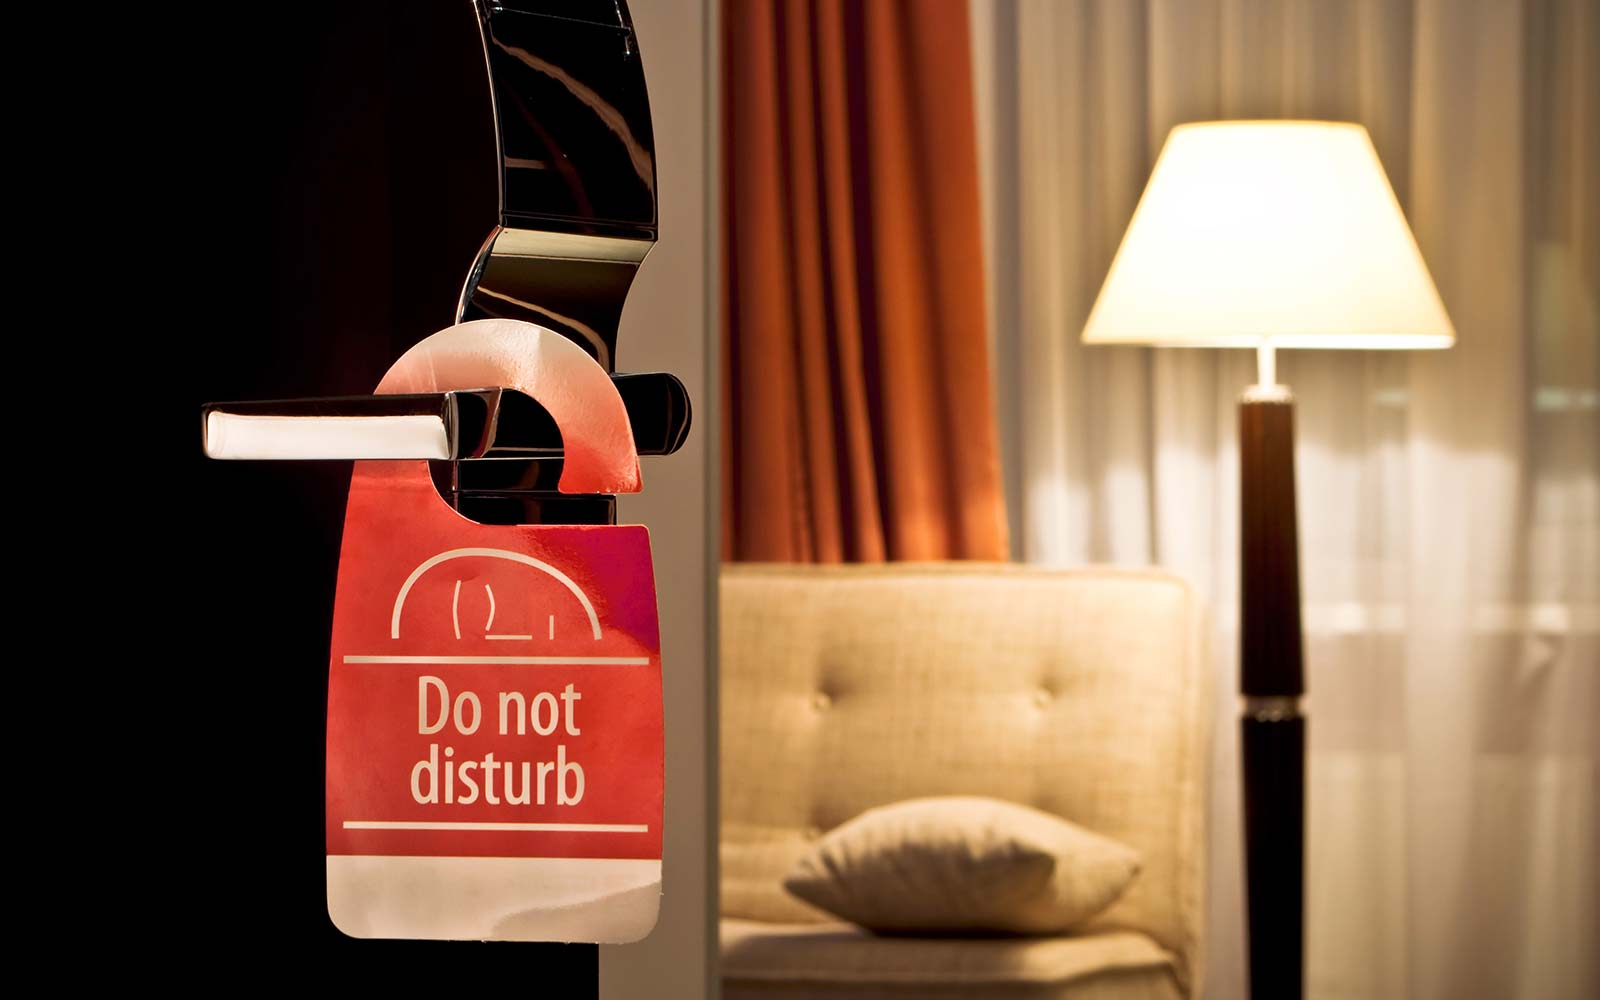 Hotel Policy Change Privacy Signs Do Not Disturb Security